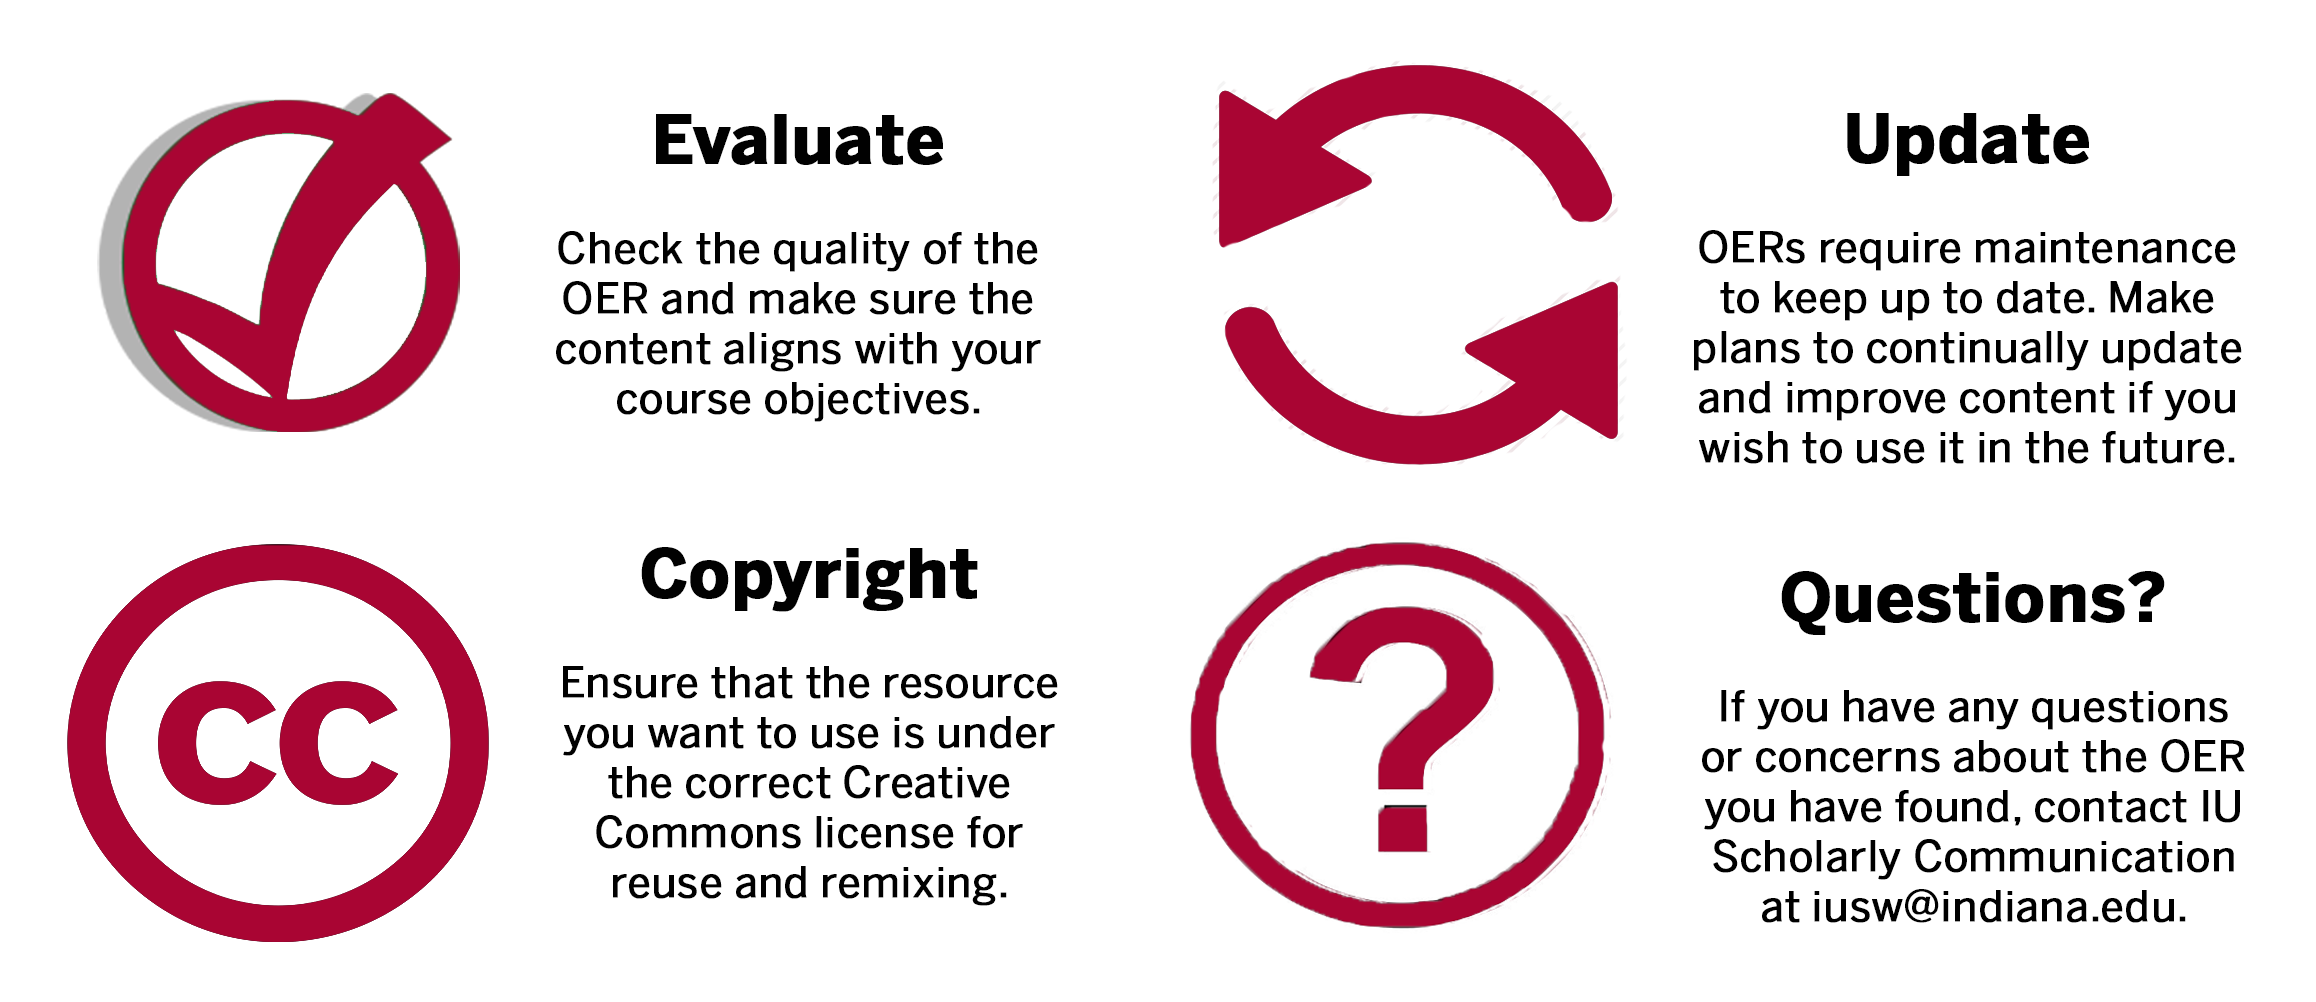 infographic advising instructors to evaluate, update, and review copyright for OER. Contact iusw@indiana.edu with questions